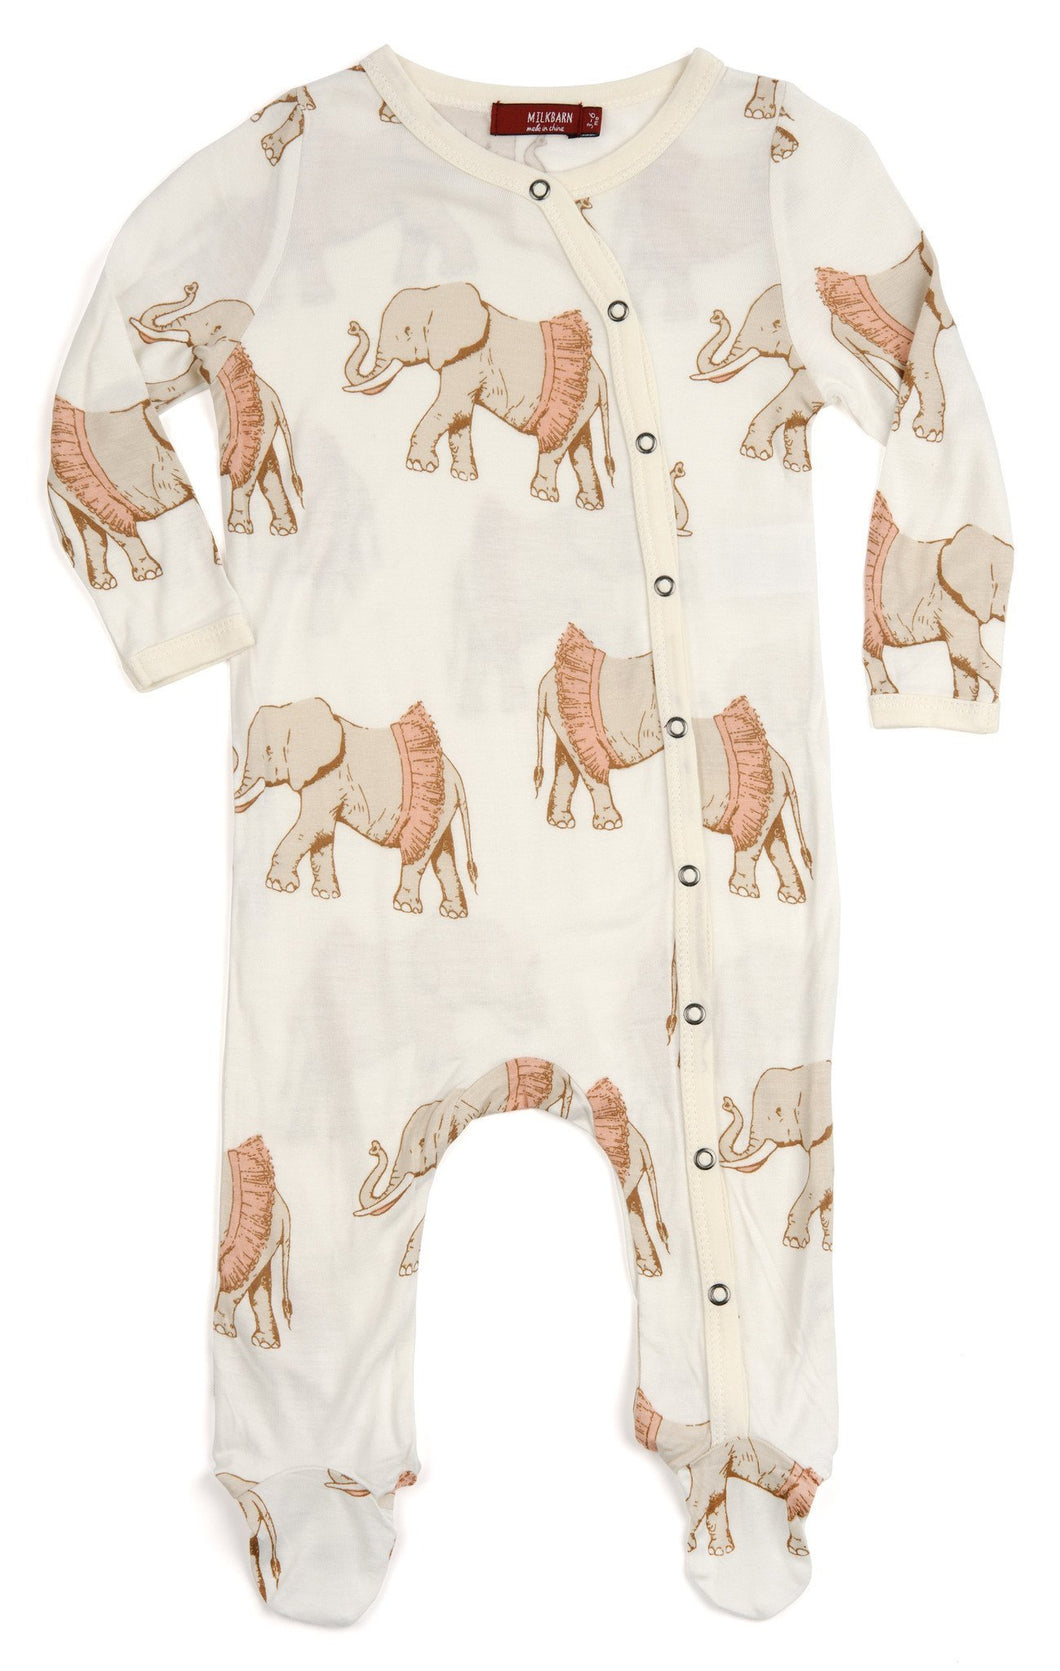 Bamboo Footed Romper - Tutu Elephant